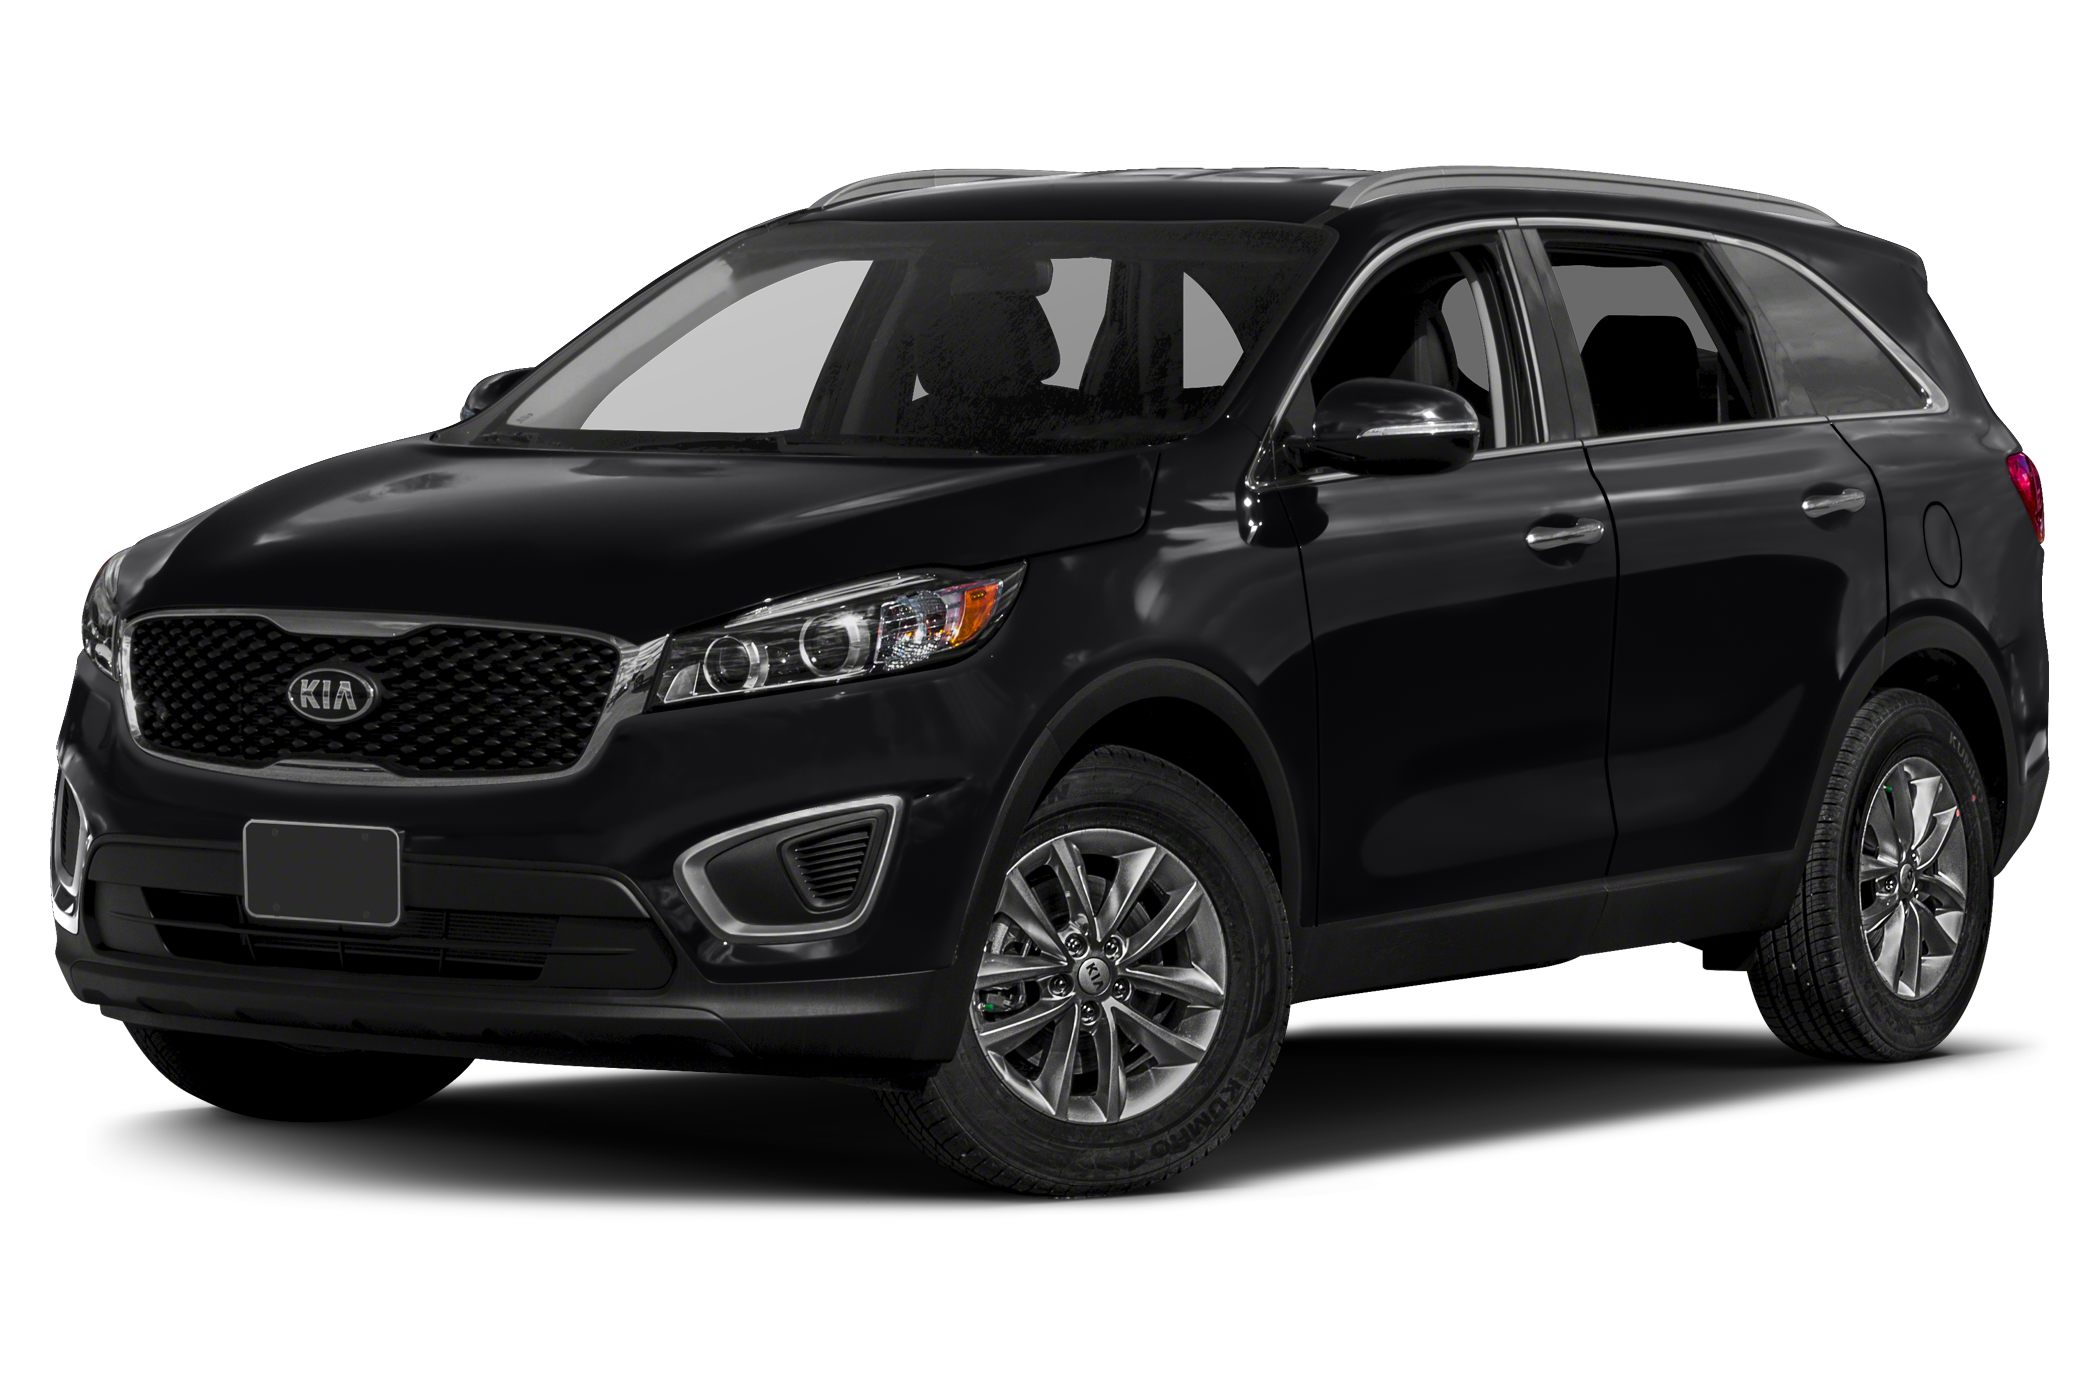 2016 Kia Sorento LX For Internet Pricing and InformationPlease call Teresa Brown  866-387-3798It